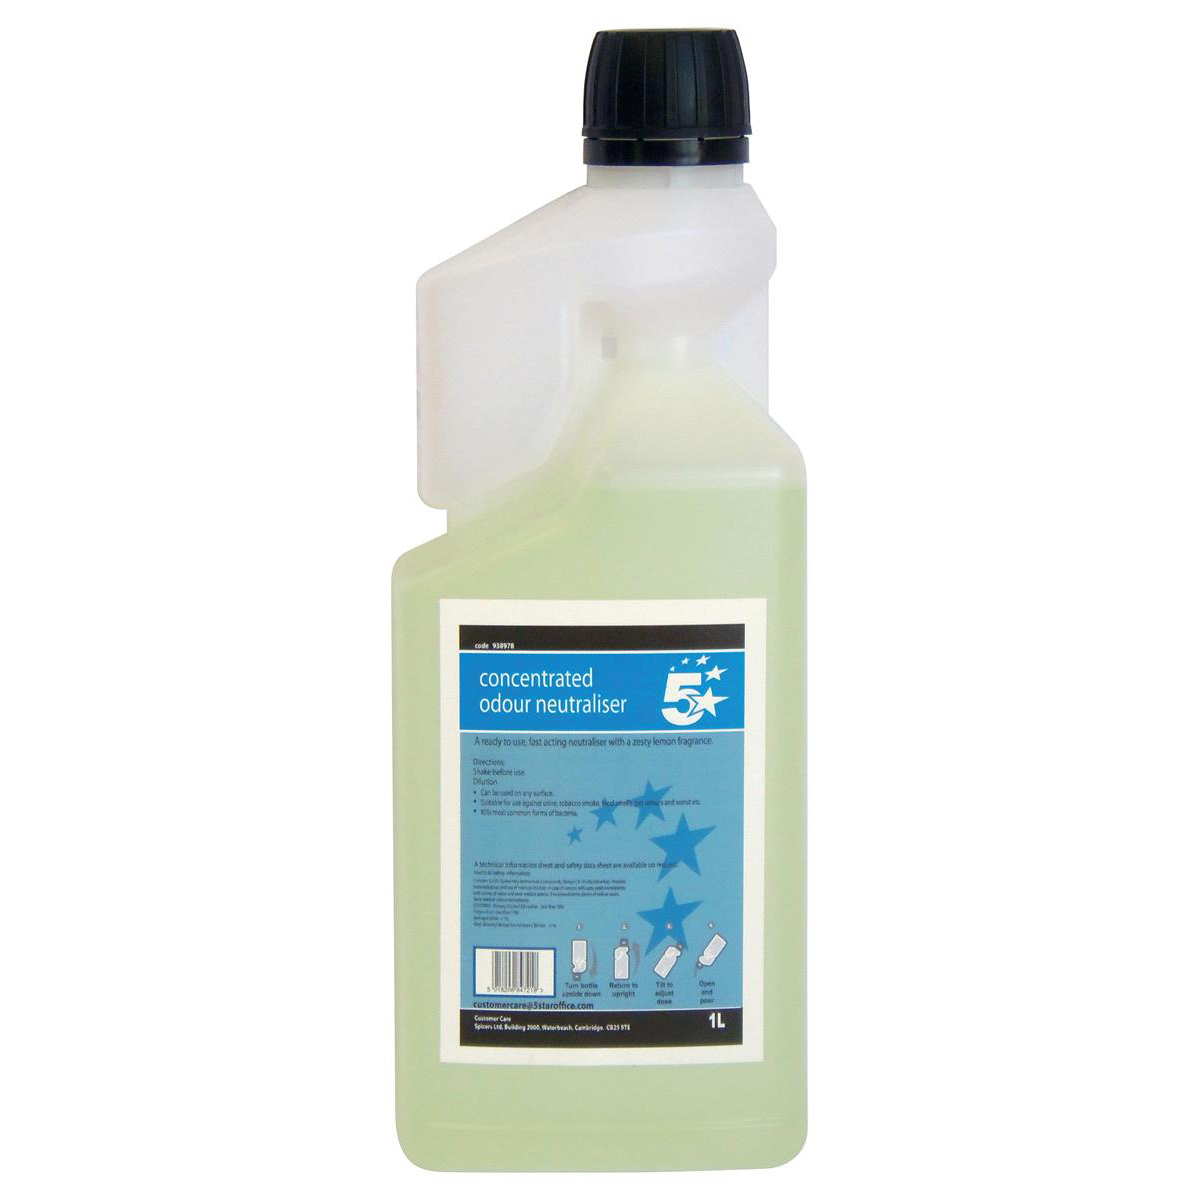 5 Star Facilities Concentrated Odour Neutraliser 1 Litre